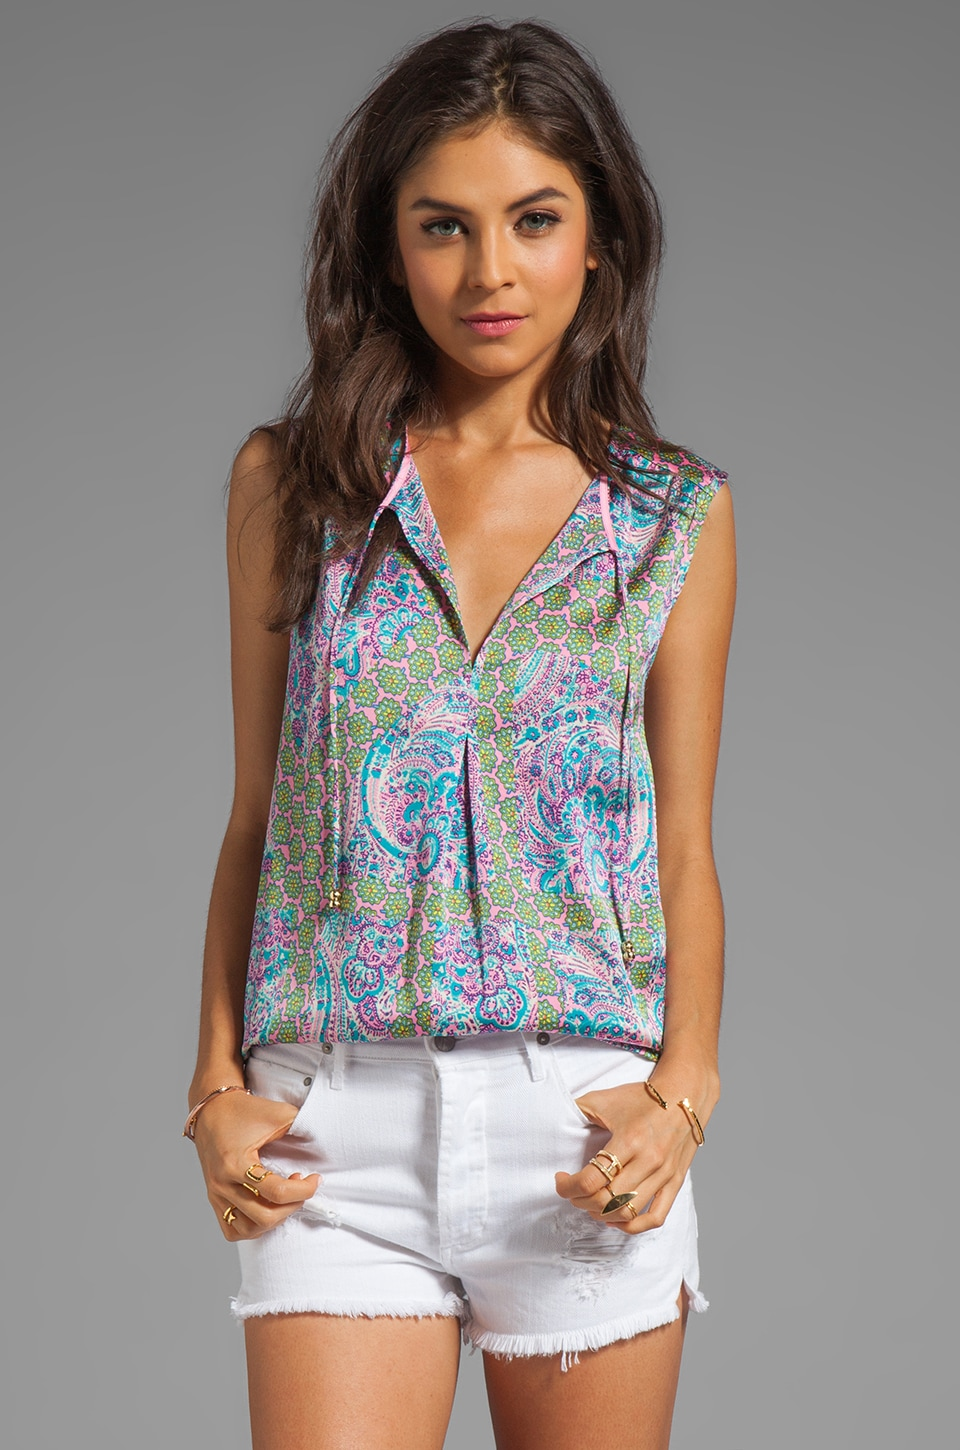 Juicy Couture Imperial Starflower Tank in Bardot